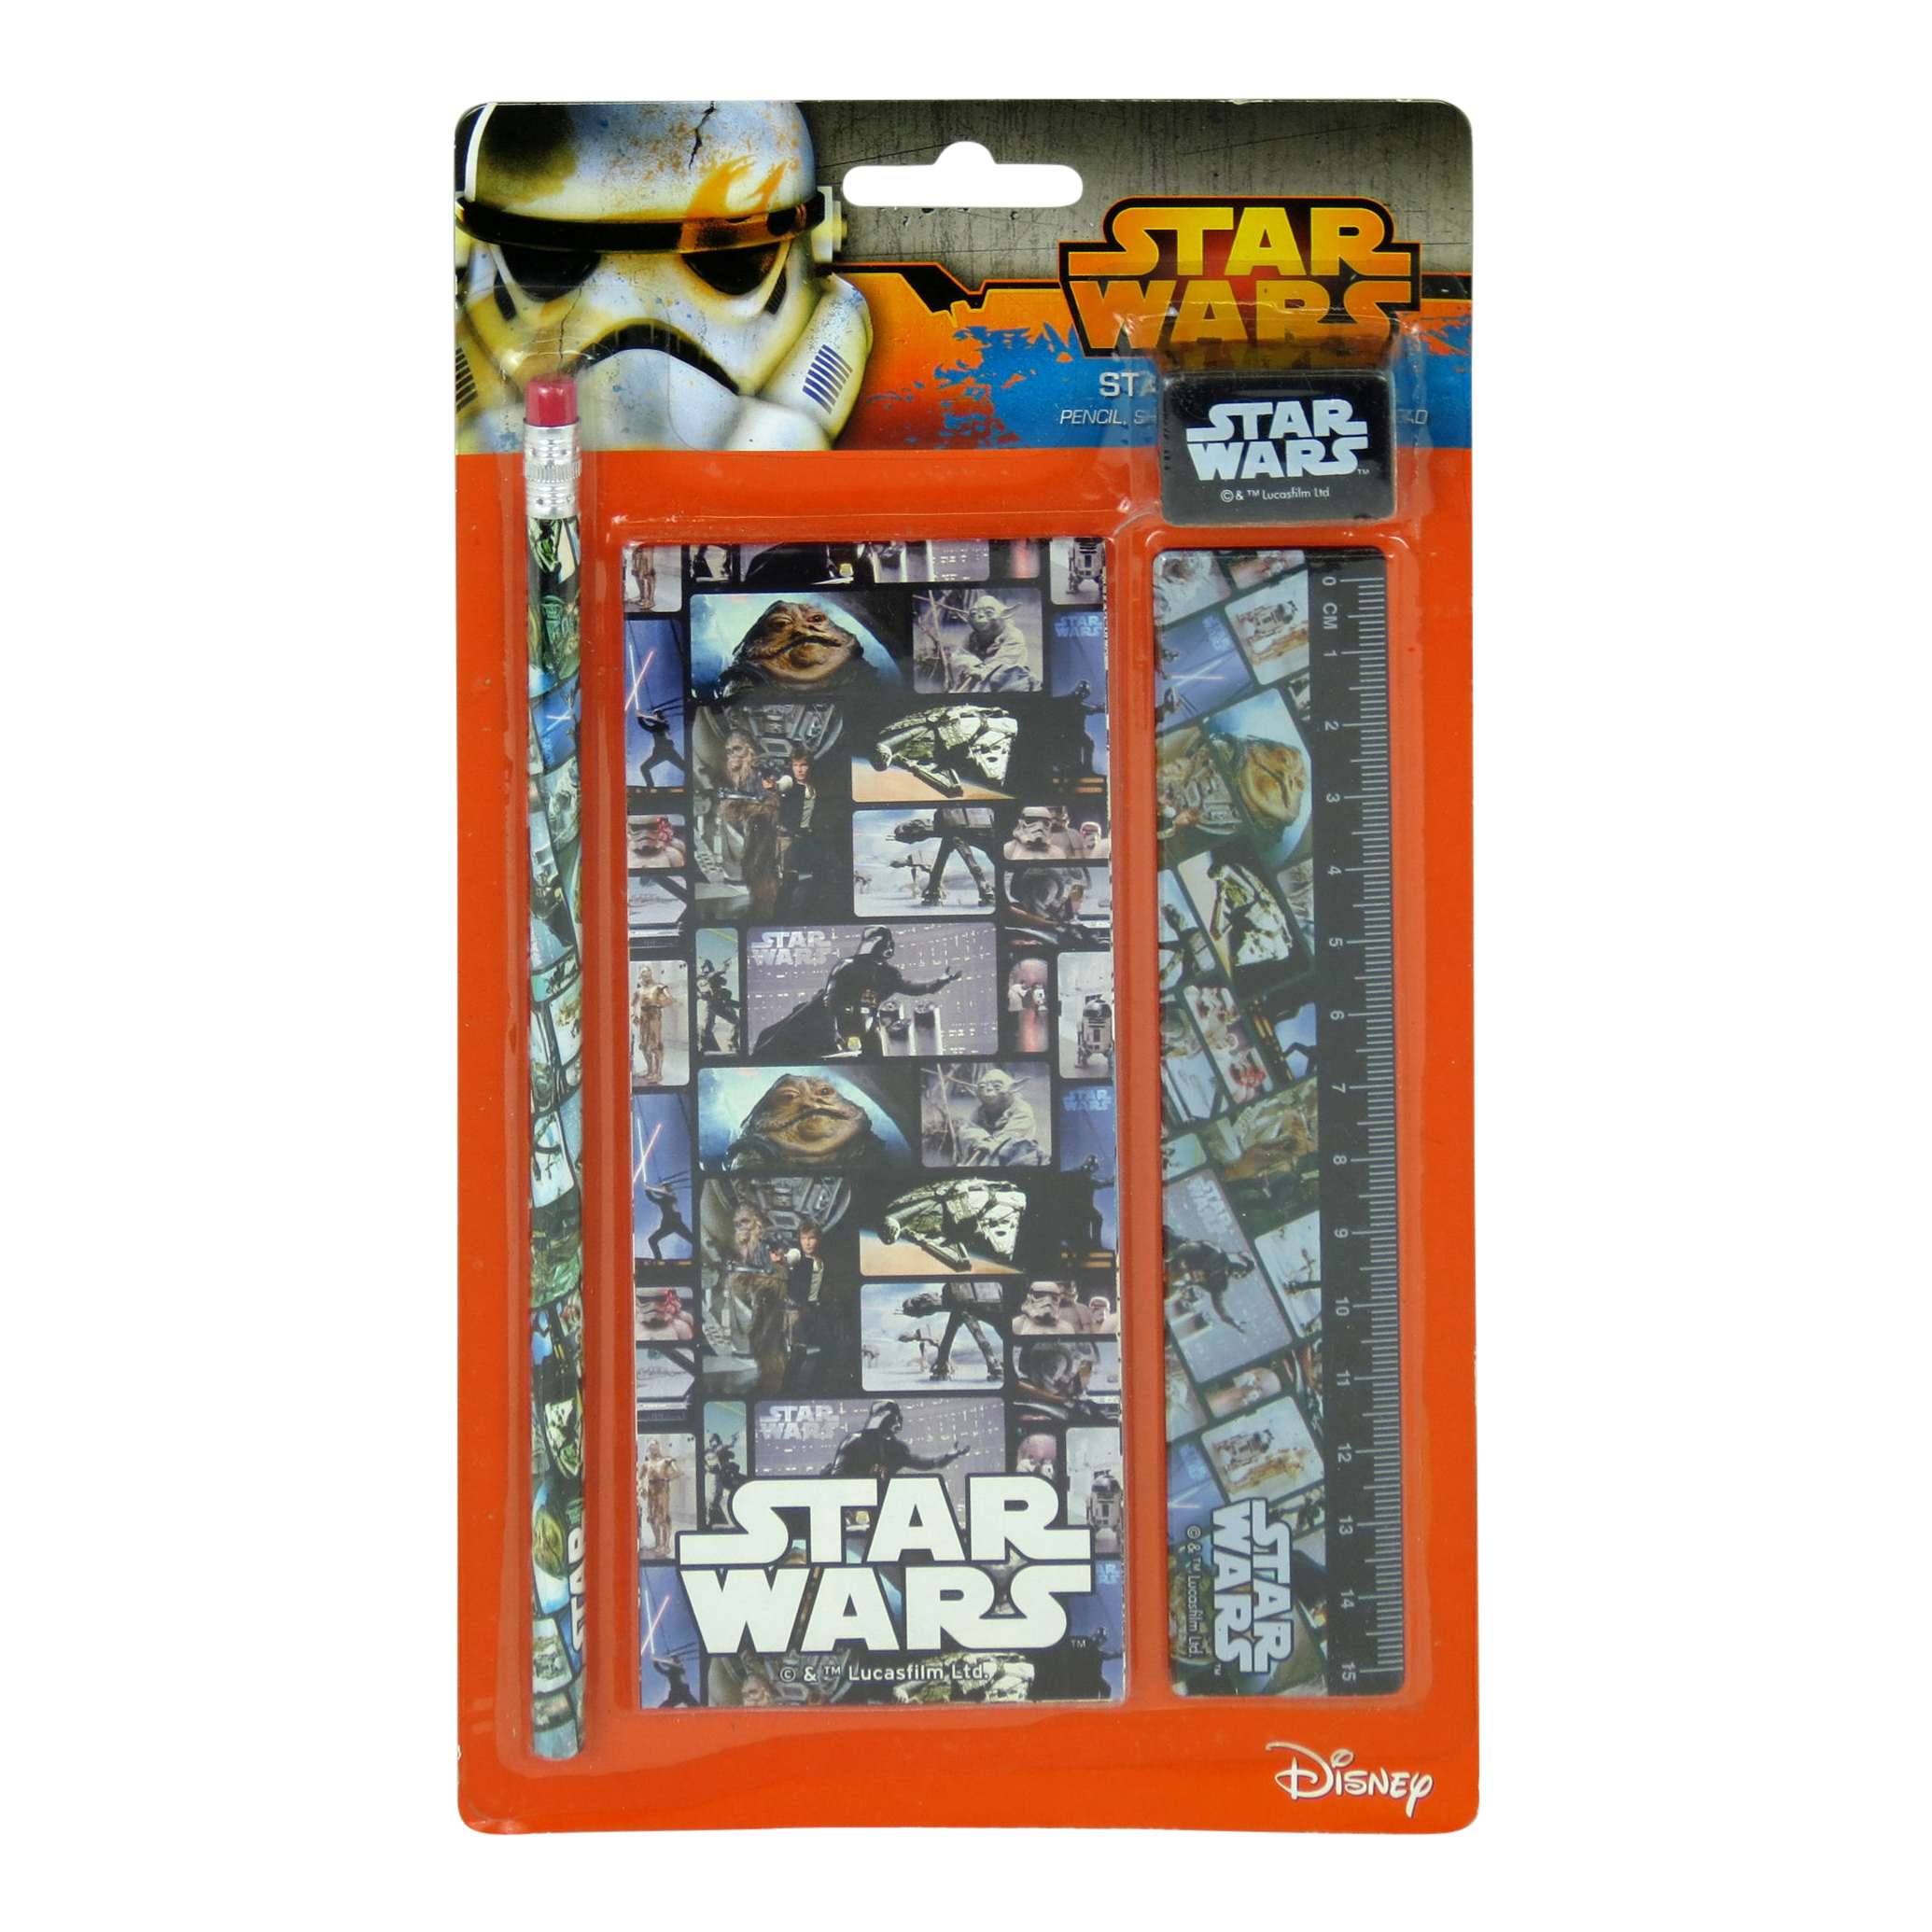 Star Wars Film Cell Blocks Stationery Set